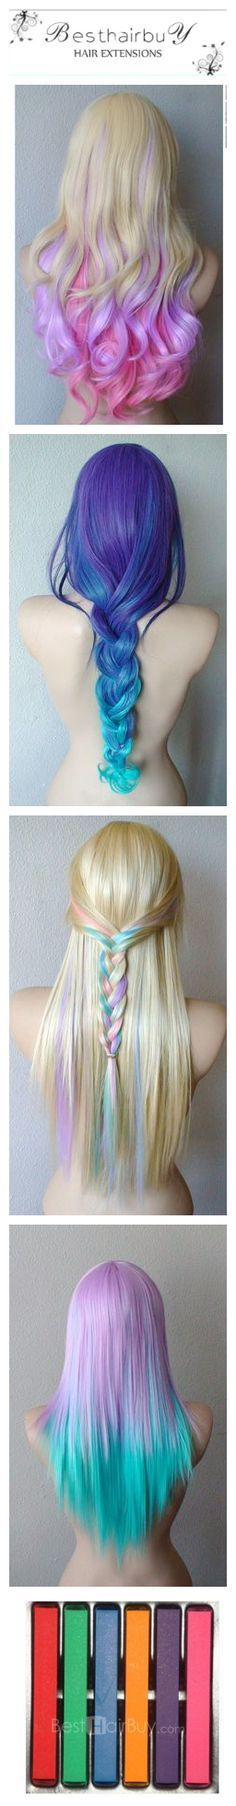 I can make my hair colorful like this!#6 Color Temporary Hair Extension Chalk Paster# No need to heat your hair! | Fashion and Bodyboard&Surf | Pinterest